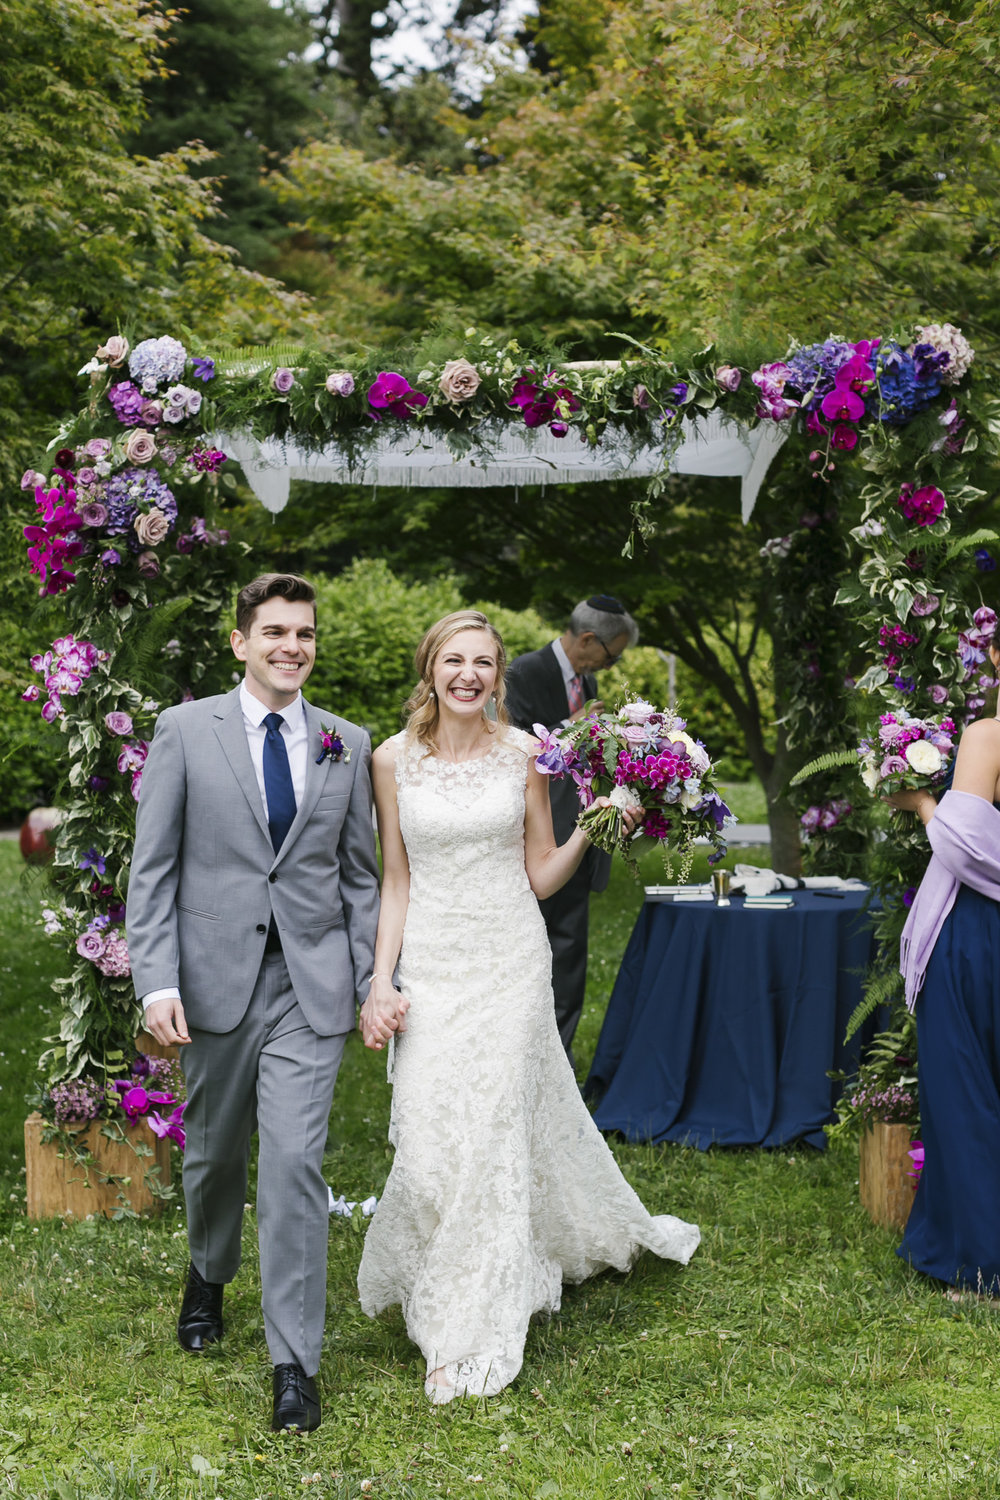 Just married couple leaving their ceremony with beautiful floral in the background